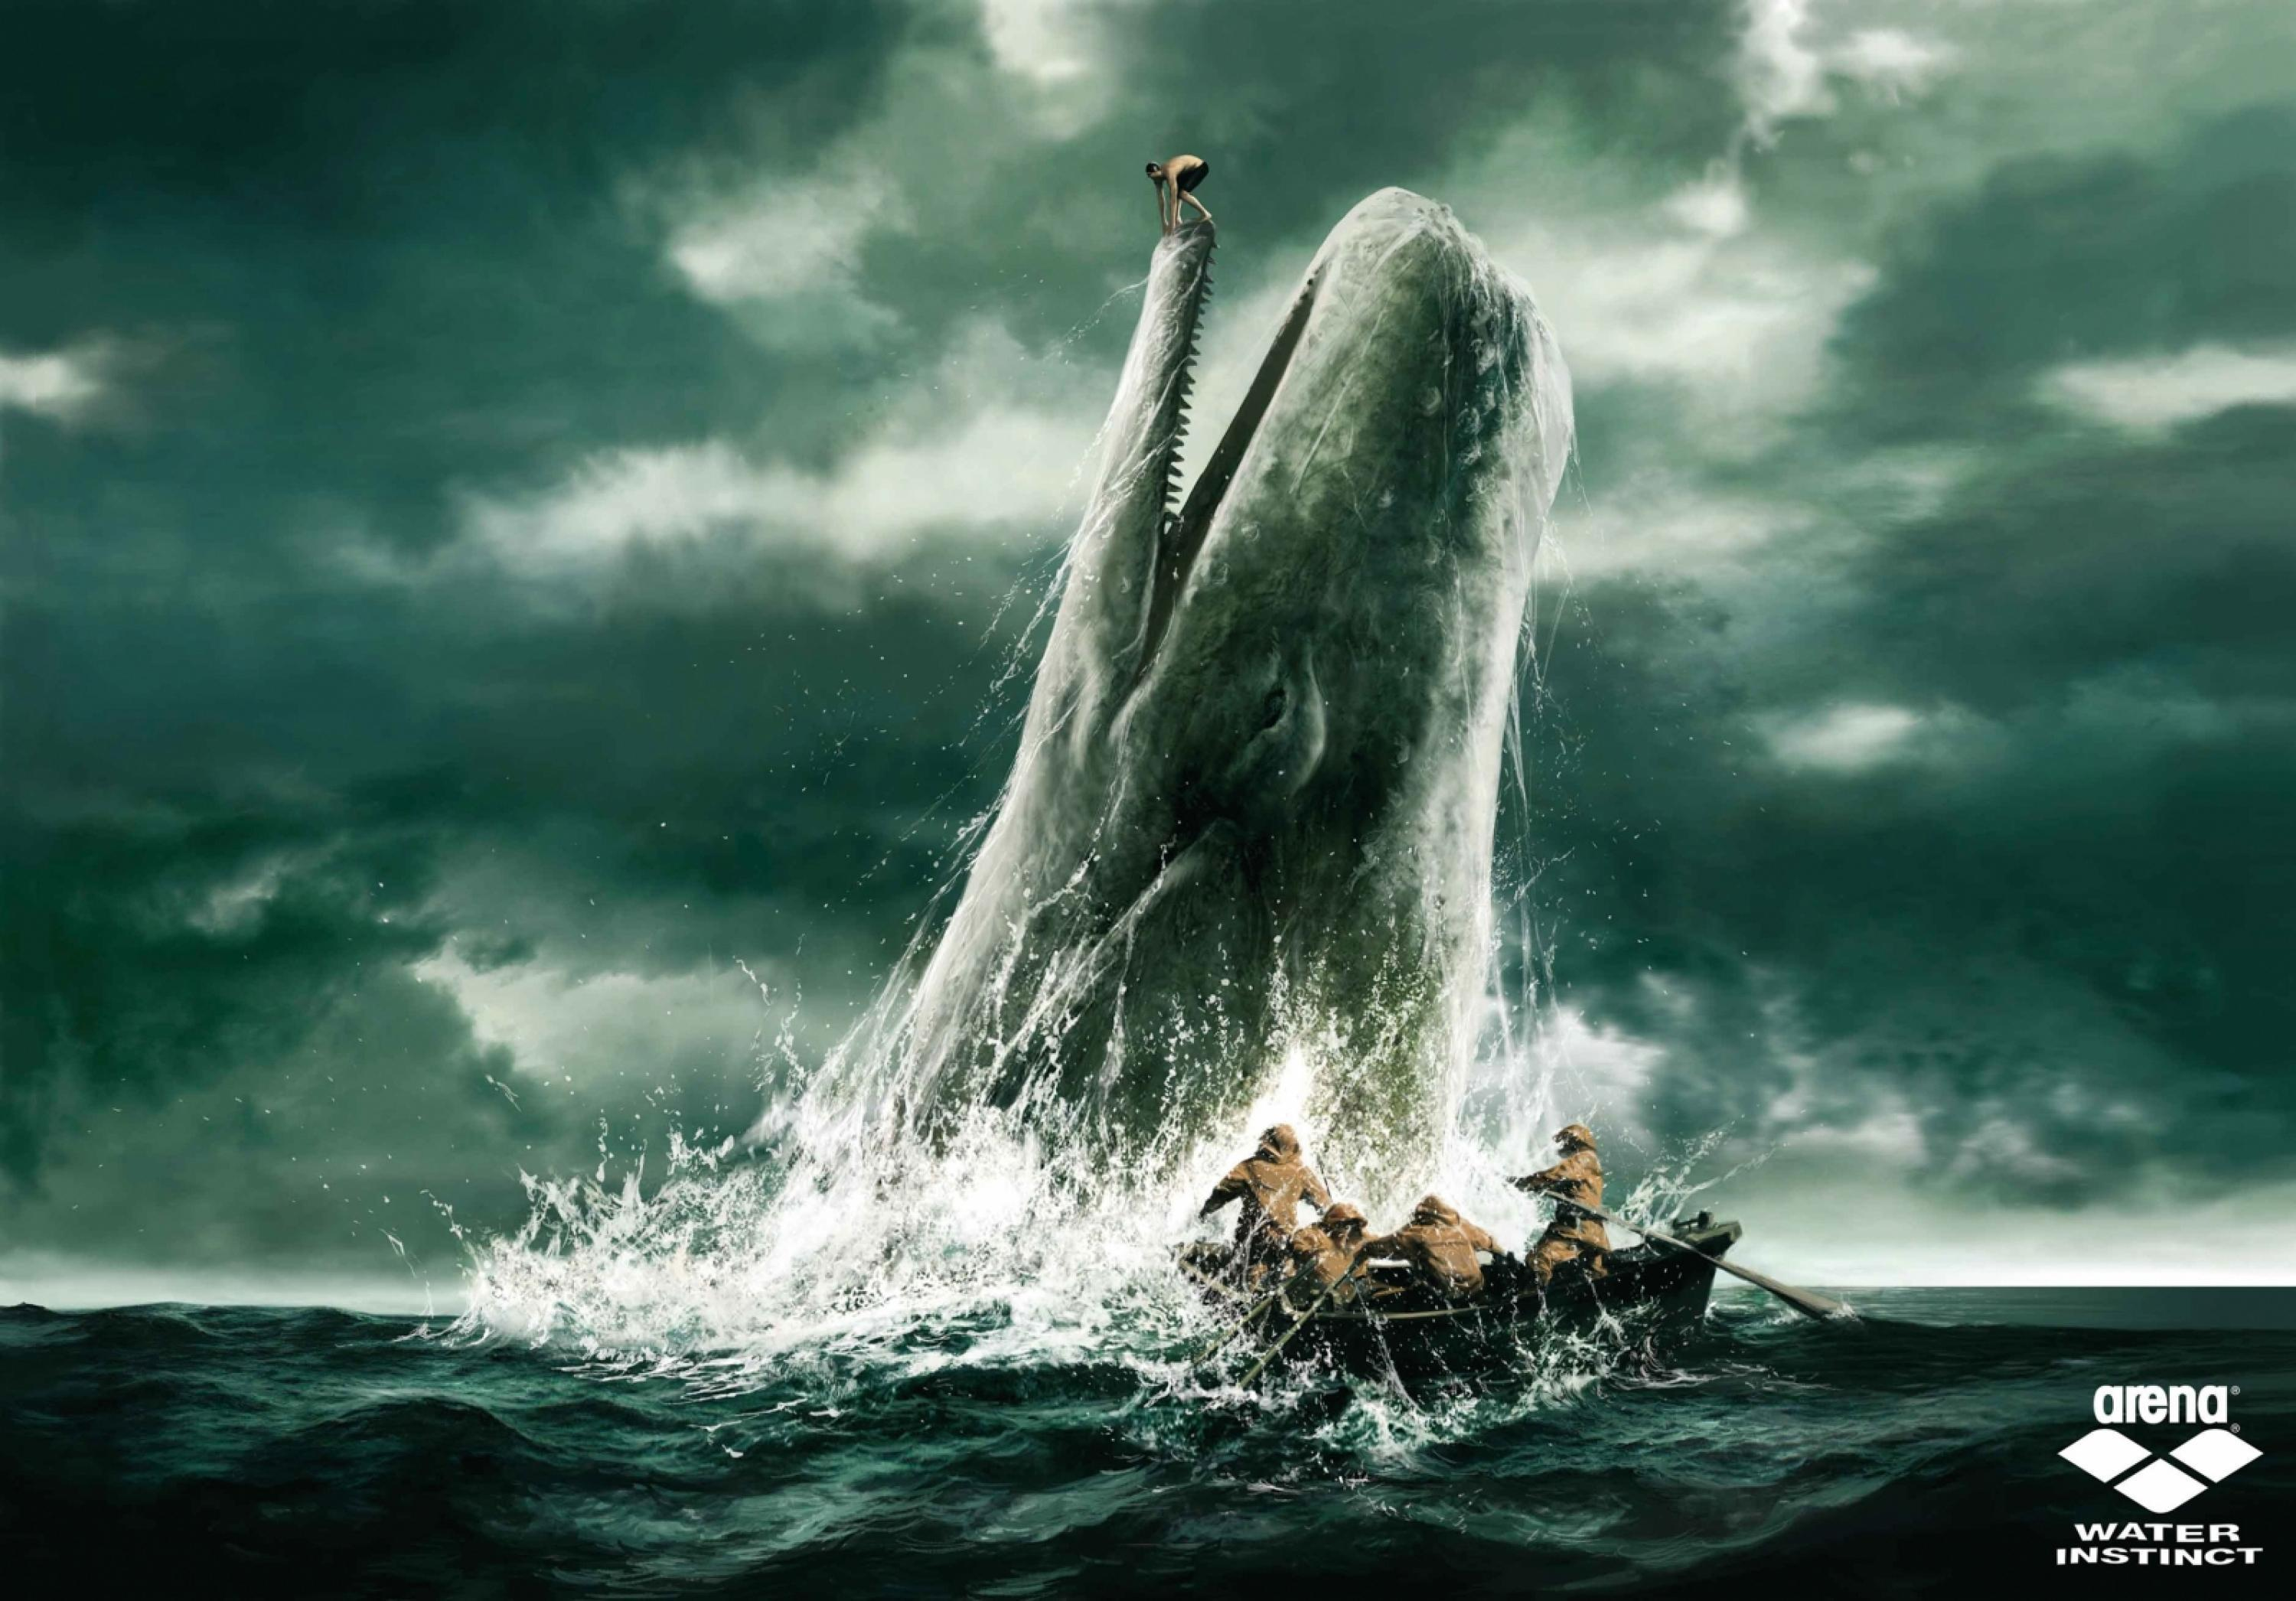 moby dick 12 moby dick and velocity to the blood gushing from the whale's heart' —paley's theology 44 moby dick 'with heads to be sure ain't there too many heads in the world.